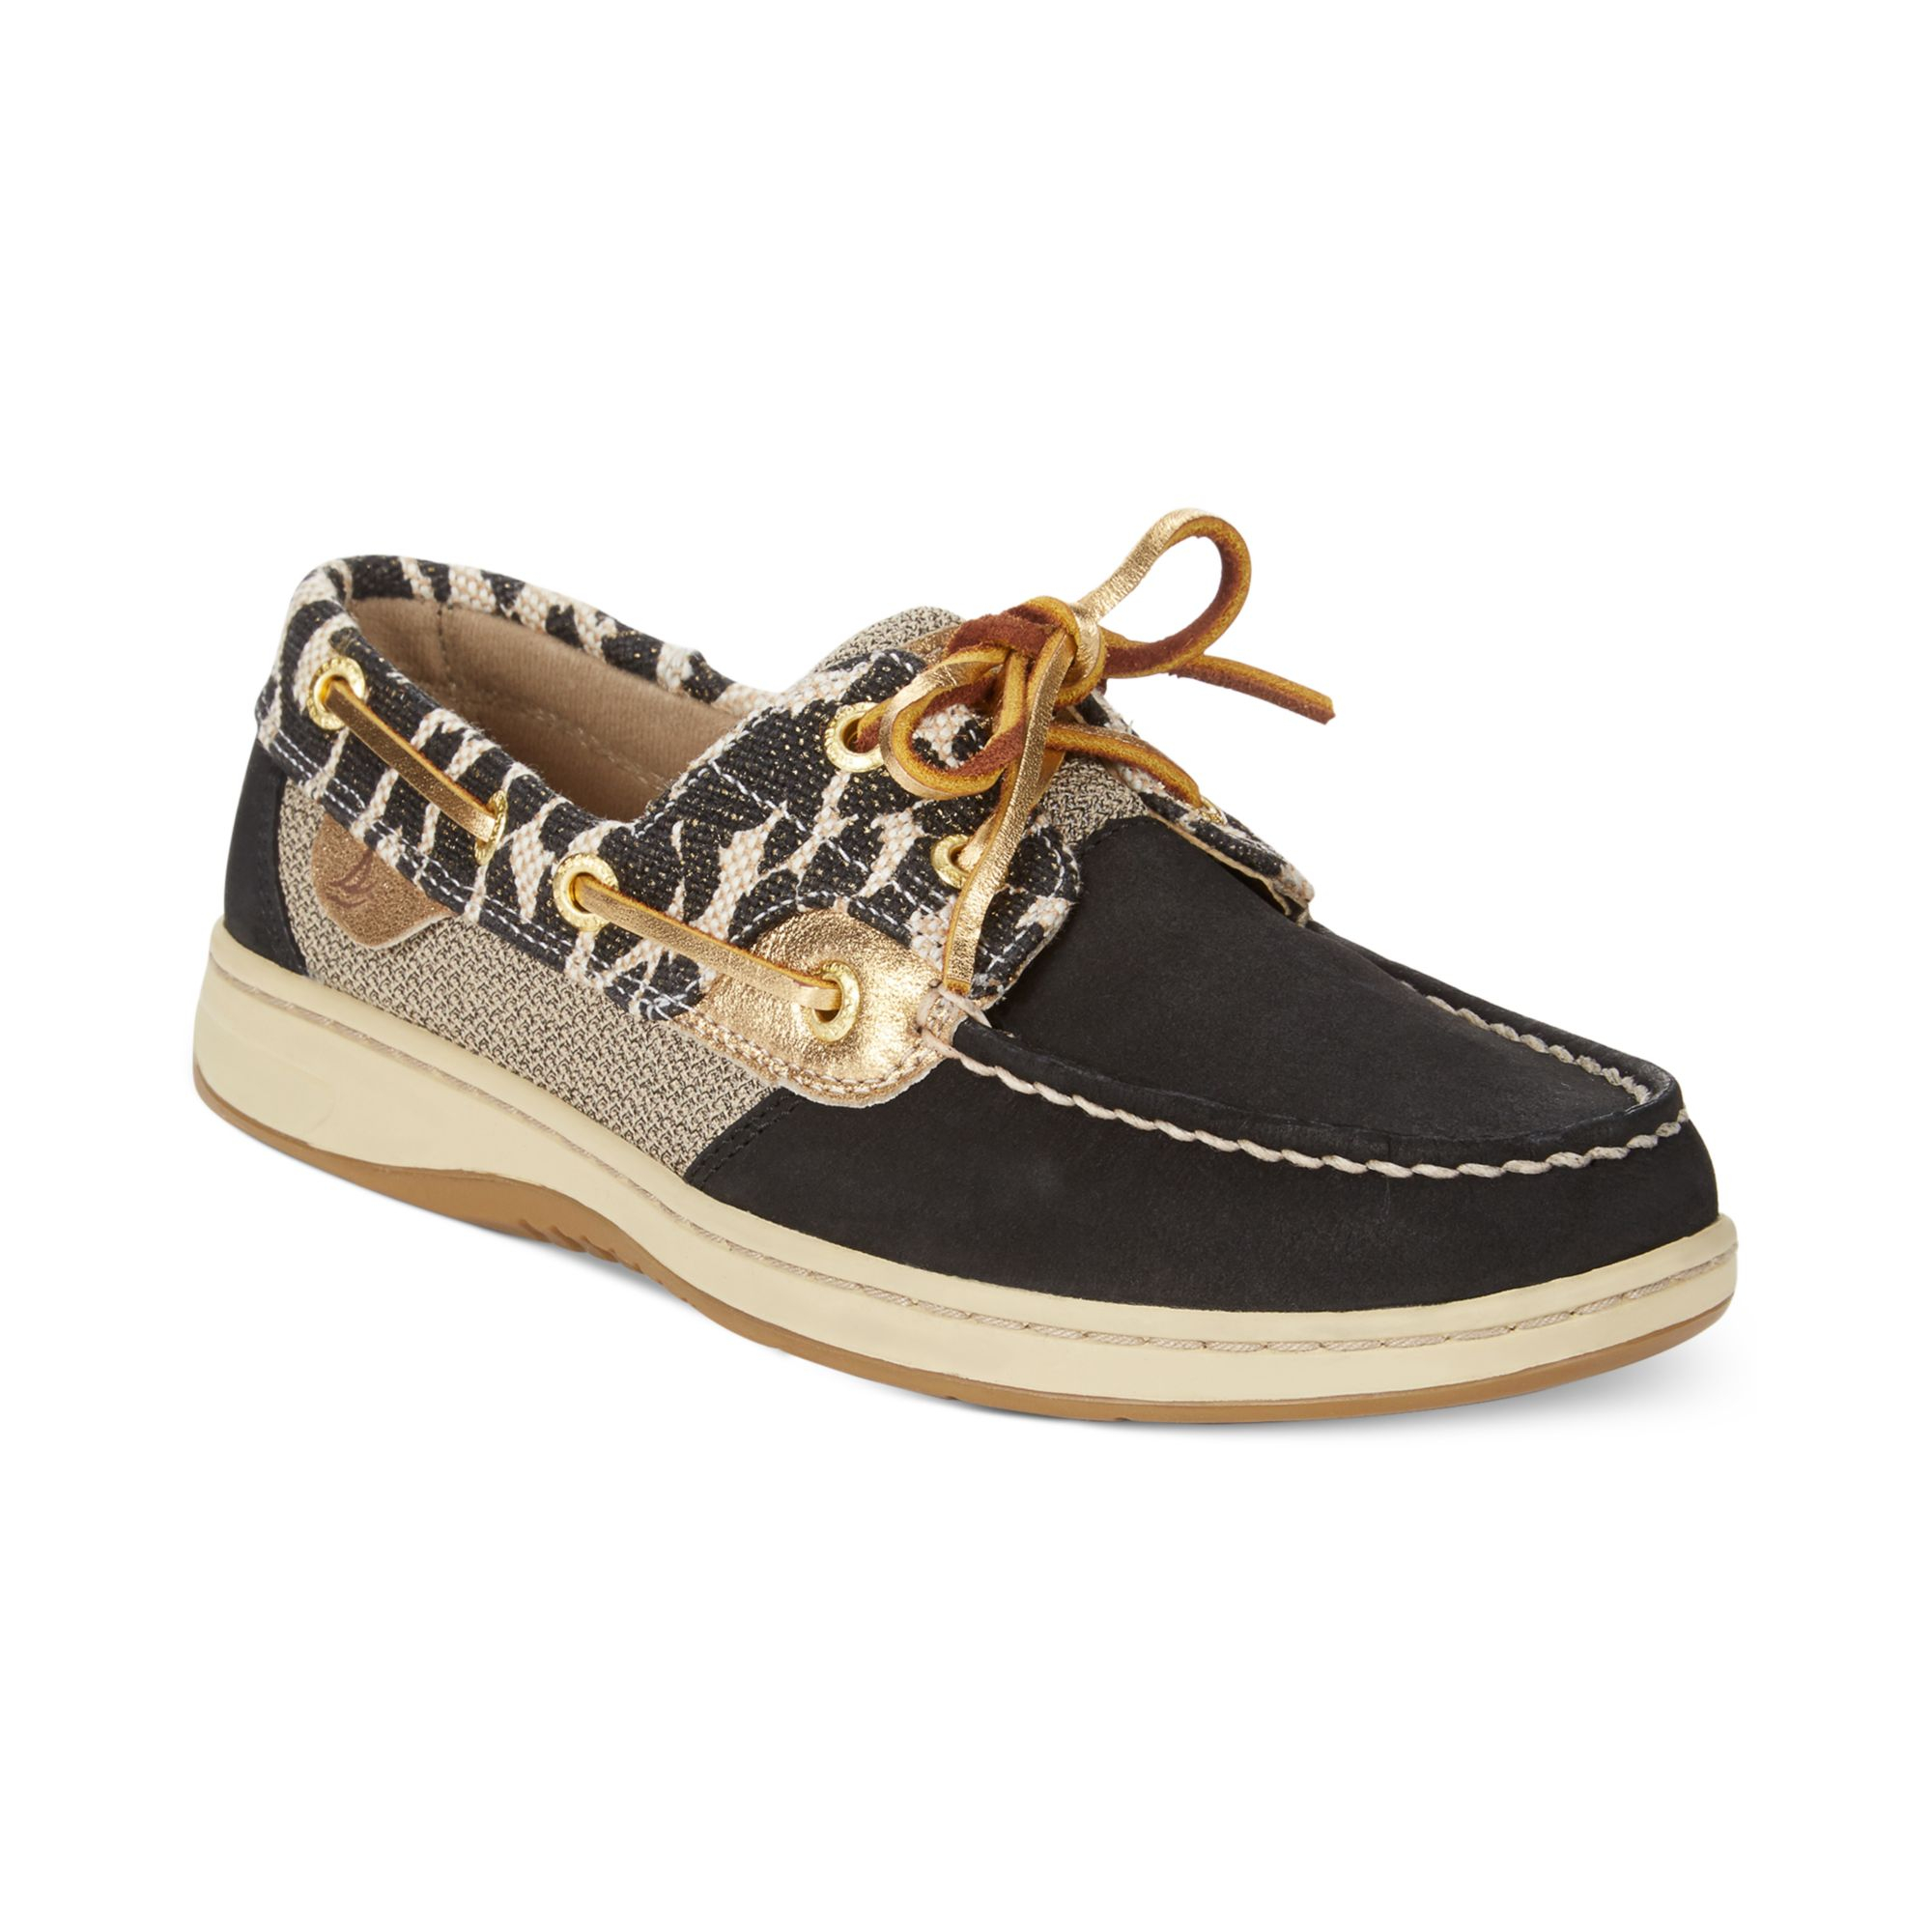 The Classic Appeal of Sperry Boat Shoes. Experience the unique style and comfort of Sperry® shoes at DICK'S Sporting Goods. Find Sperrys® shoes in a variety of designs for boating, water sports, casual wear and much more.